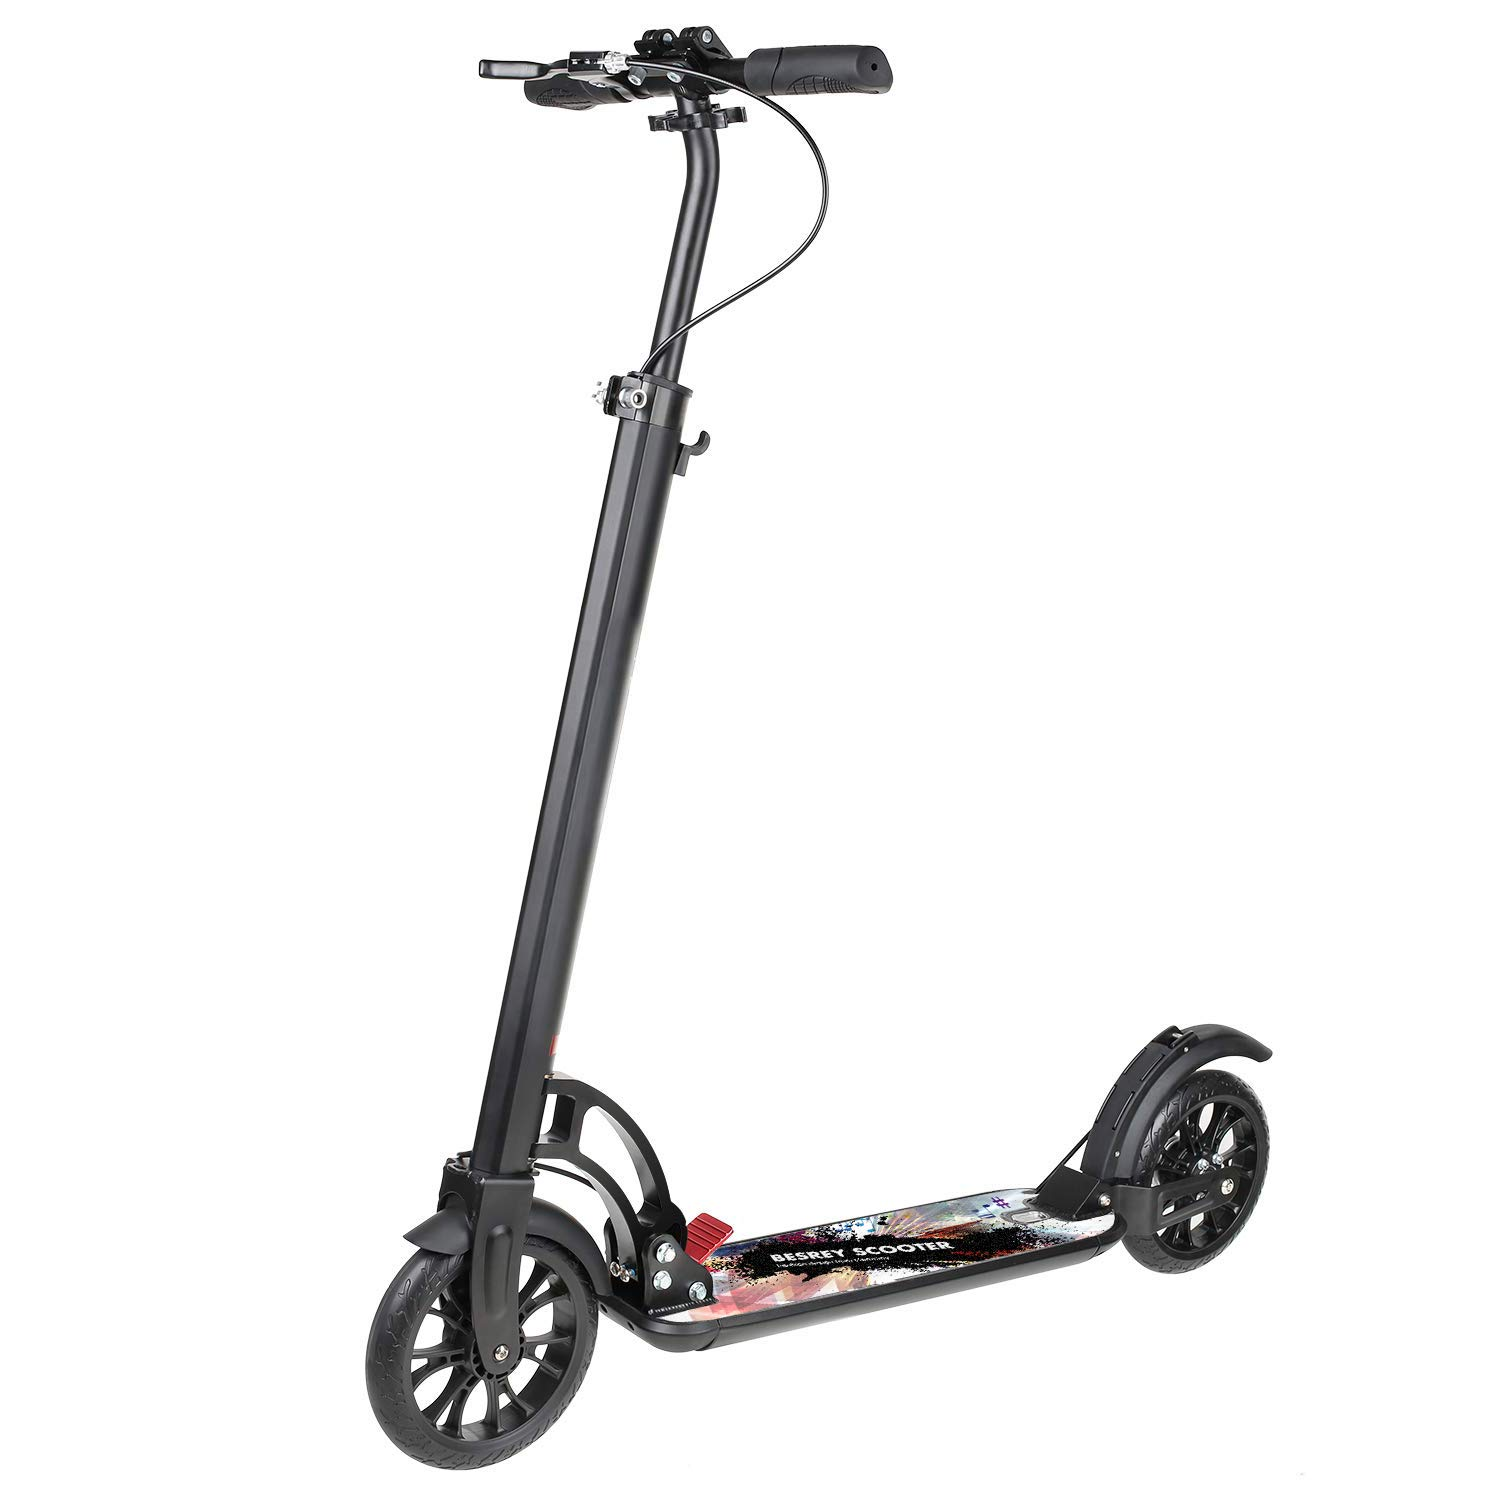 Top 10 Best Kick Scooter For Commuting - Buyer's Guide 6